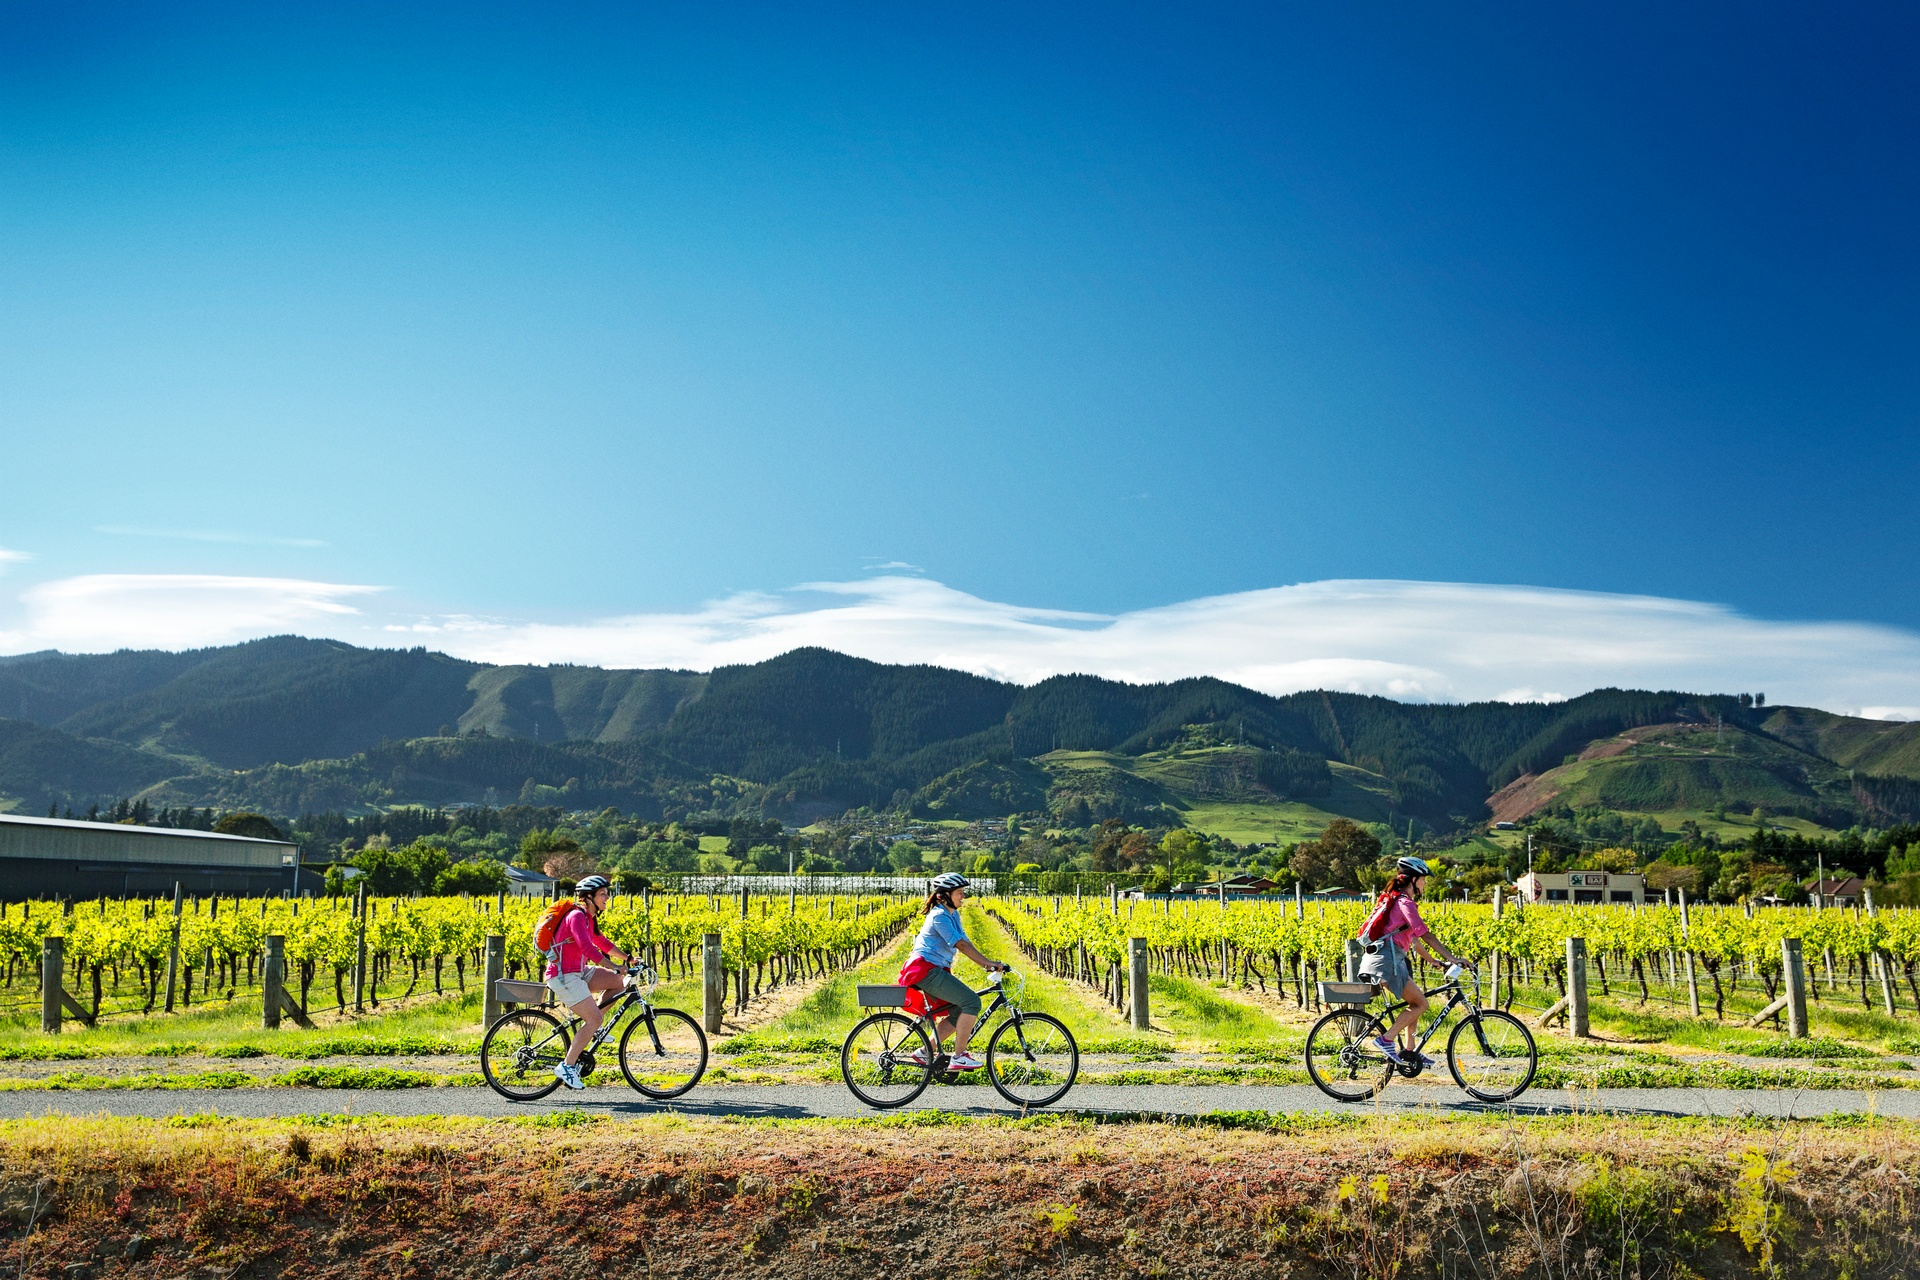 Cycling through the vineyards in New Zealand